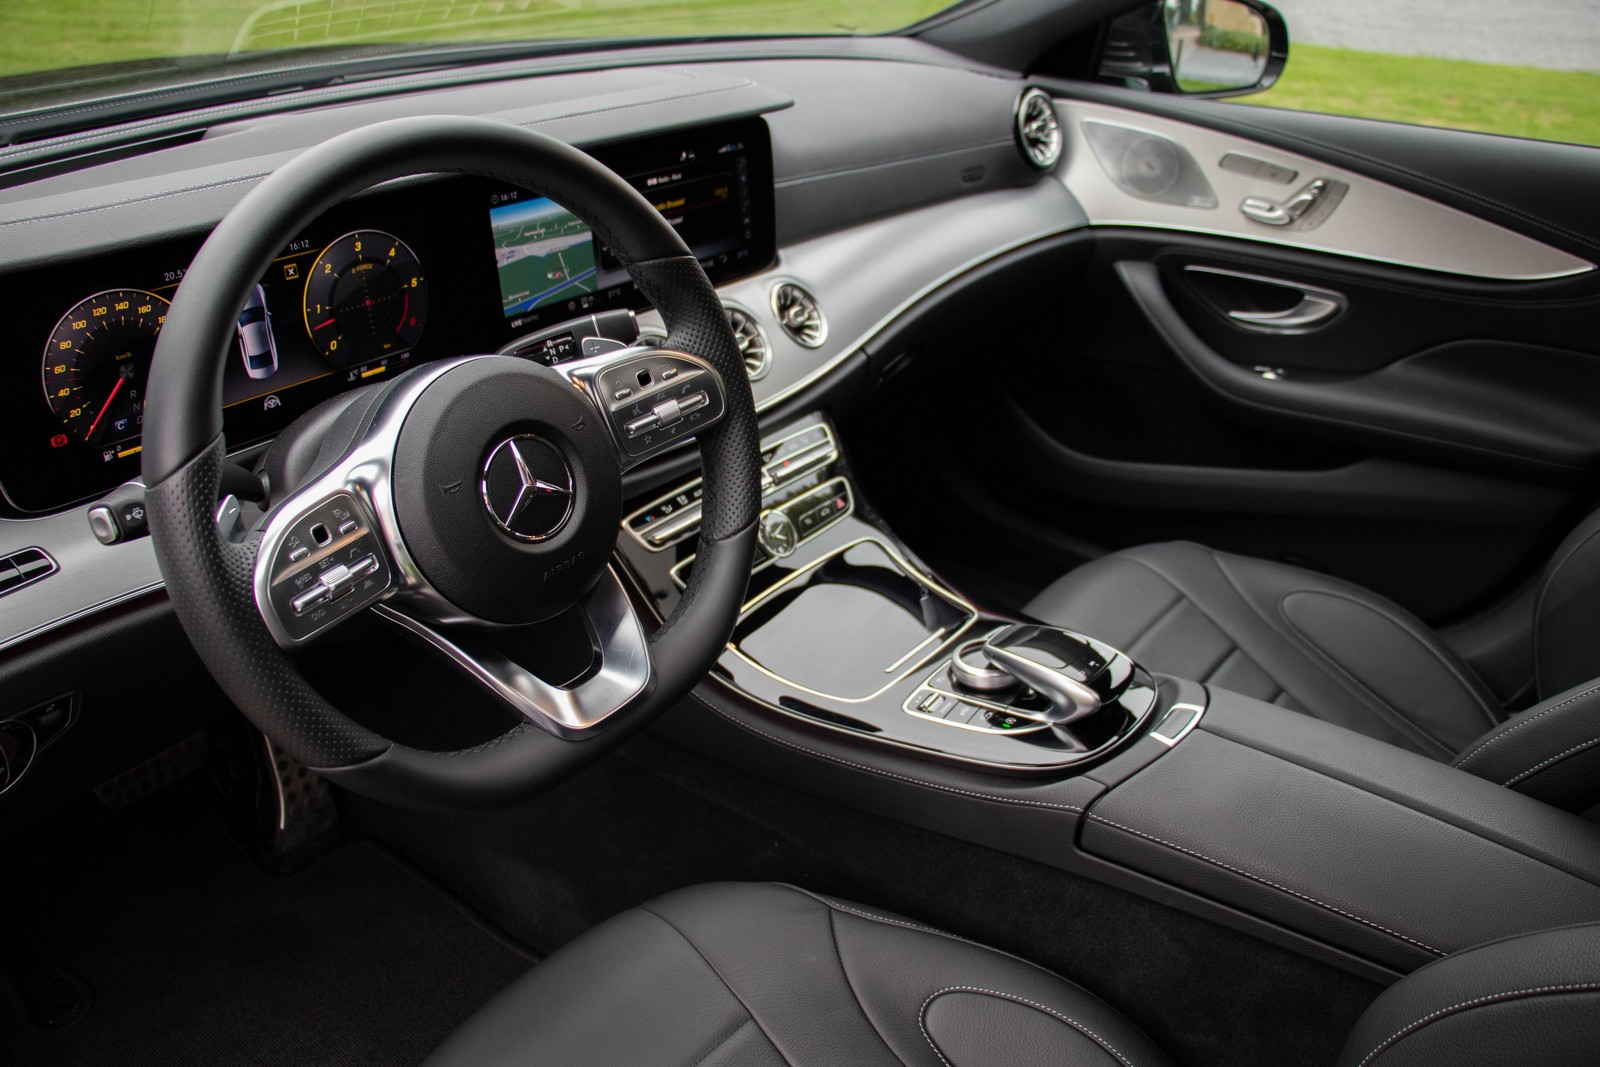 Mercedes-Benz CLS 400d Dashboard